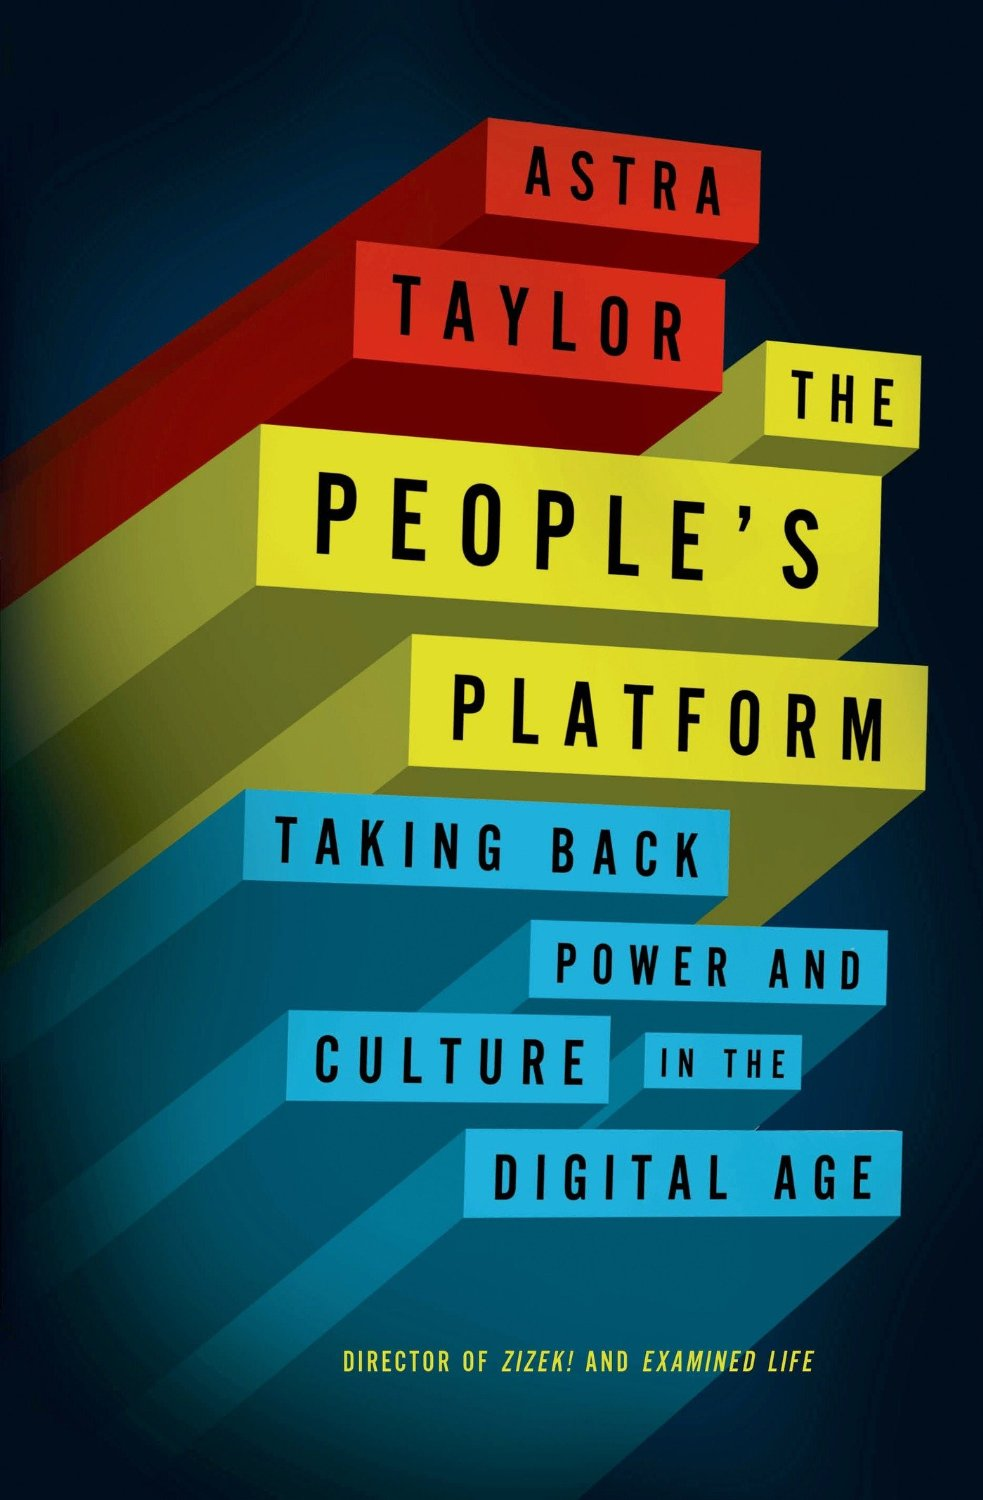 The People's Platform: An Essential Manifesto for Reclaiming Our Cultural Commons in the Age of Commerce